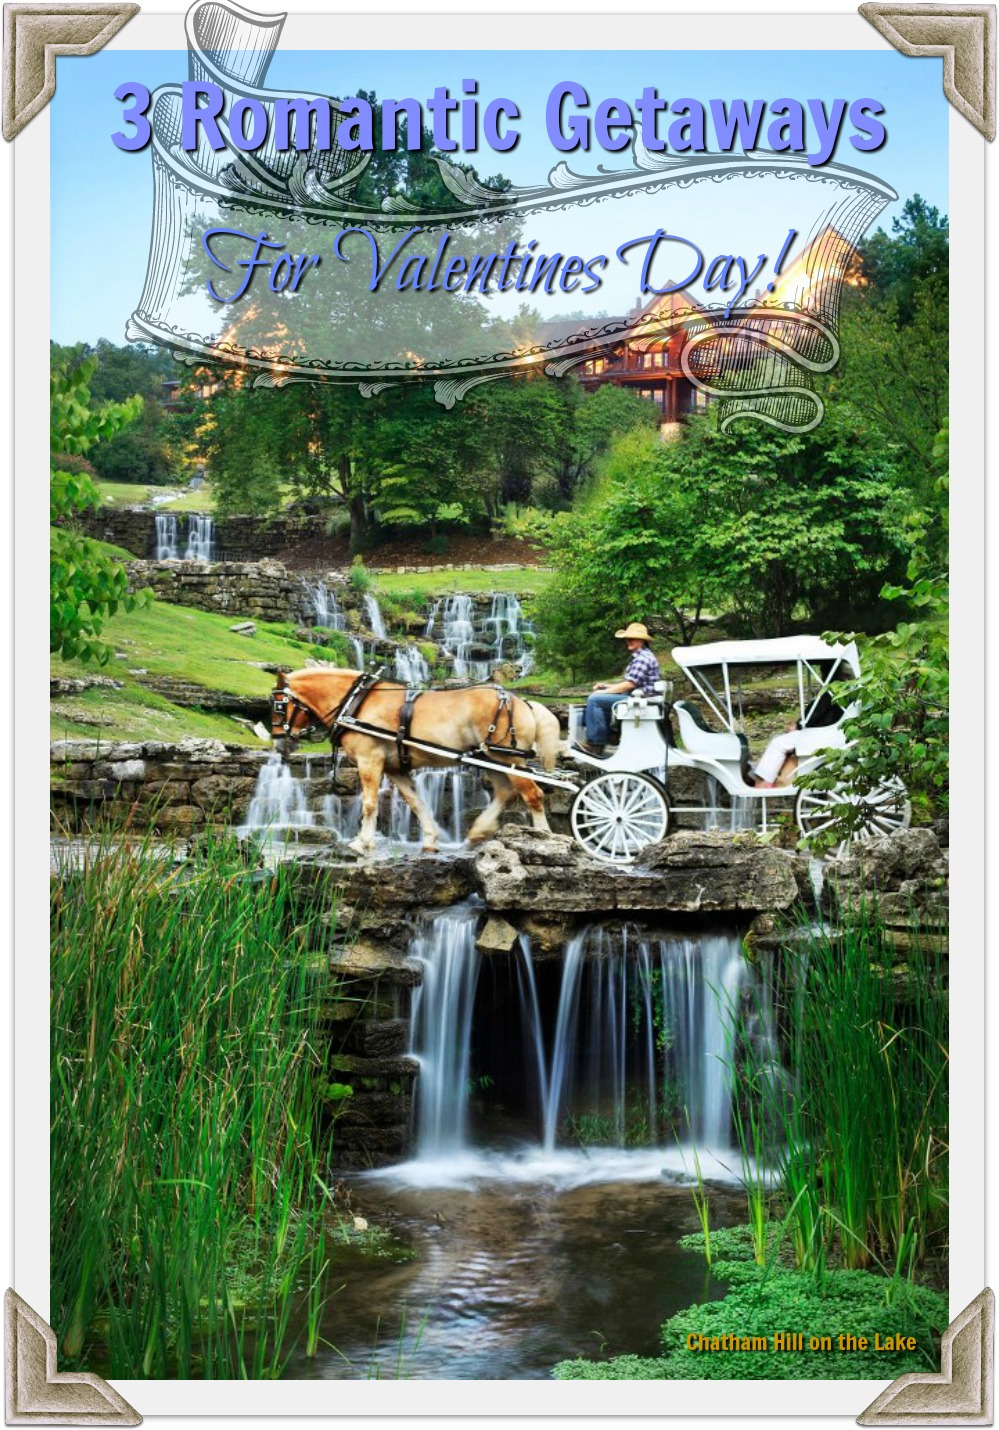 Big Cedar Lodge romantic getaway for Valentines Day